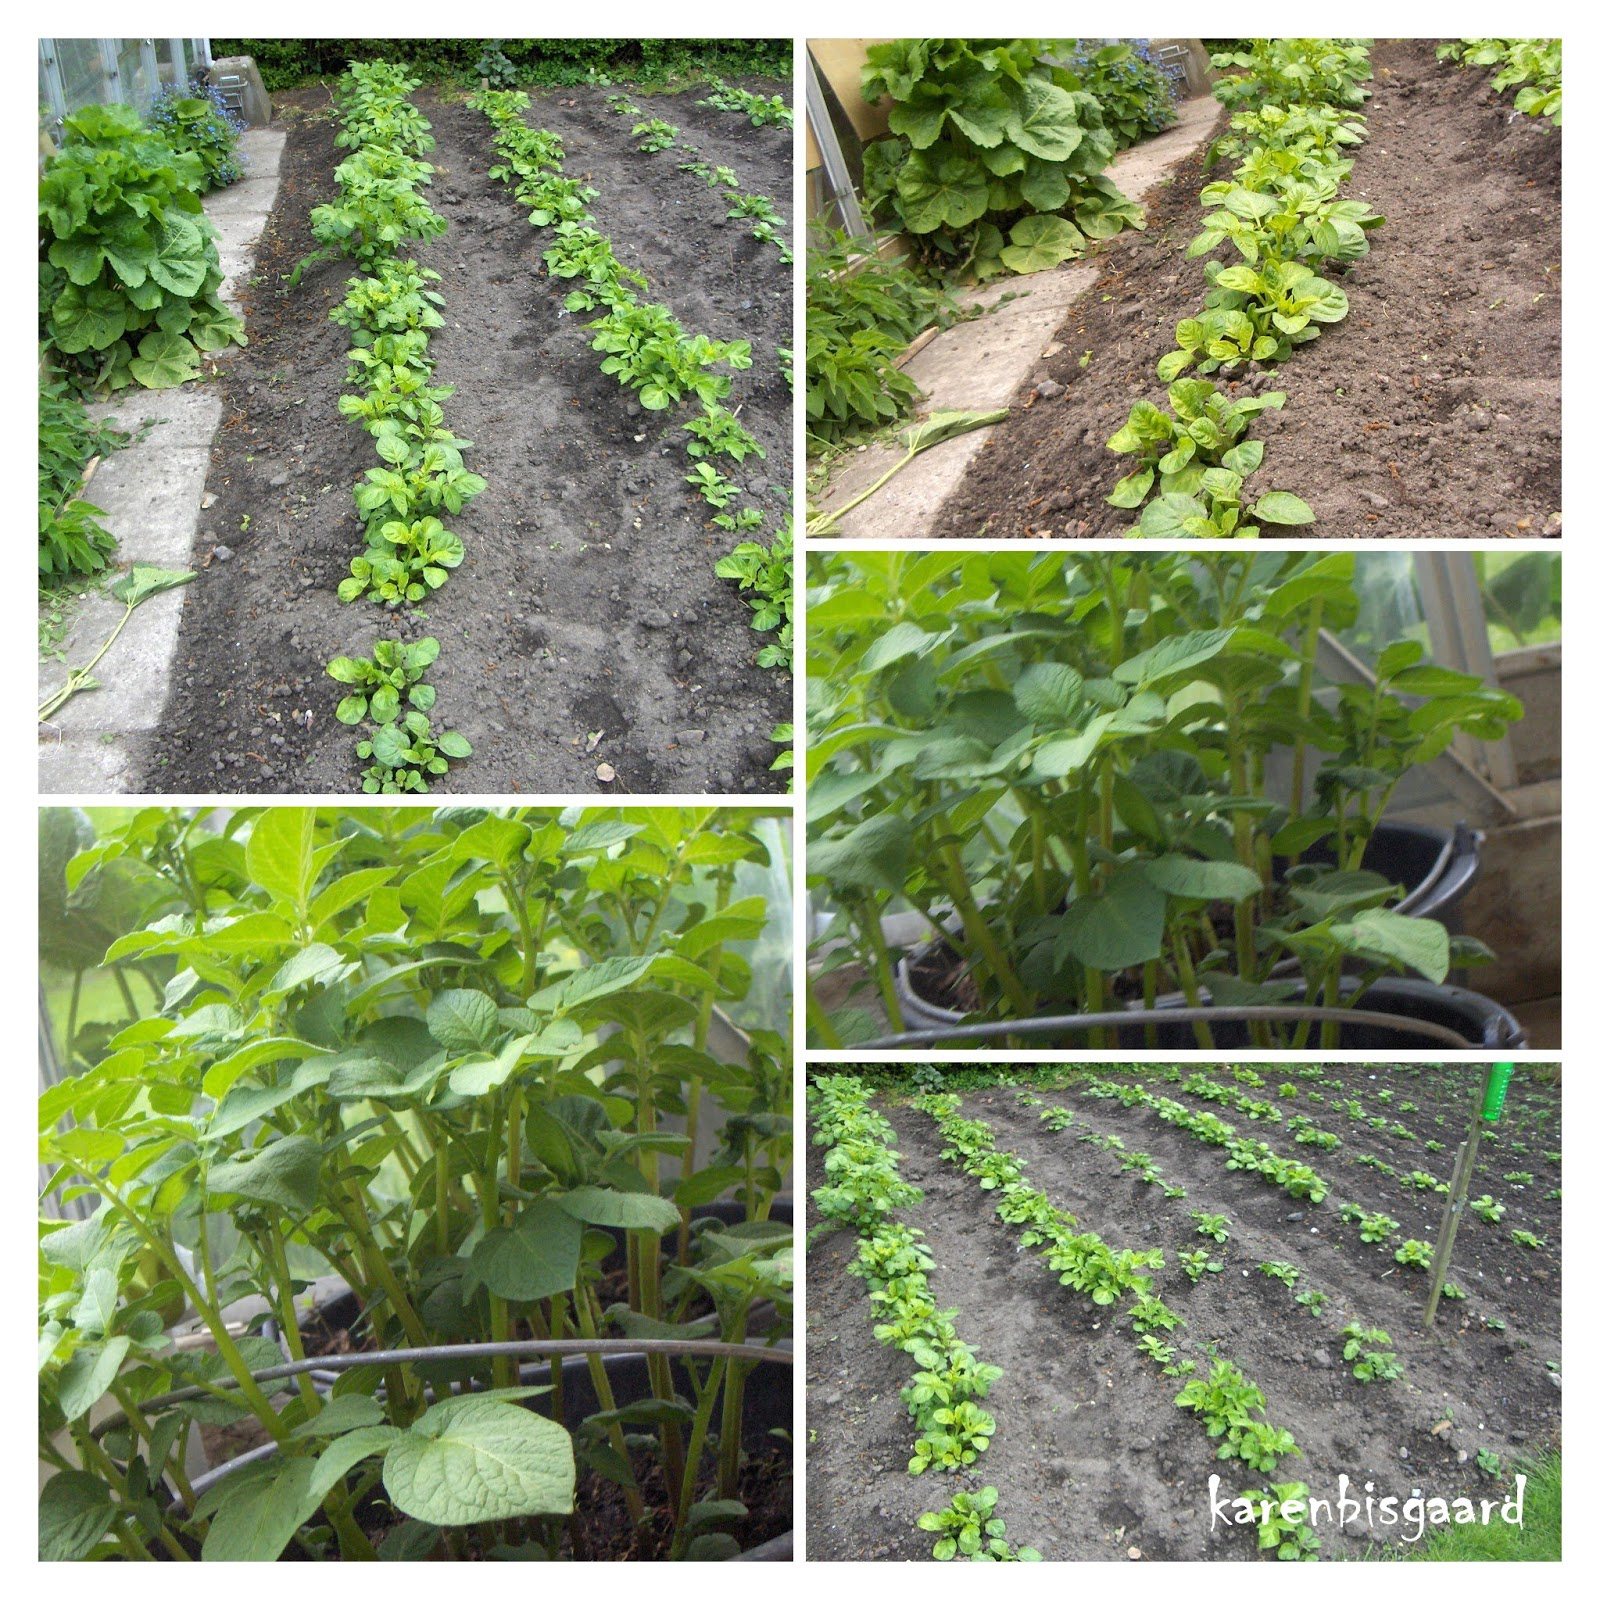 Potato Plants In Buckets And Rows Photo Collage